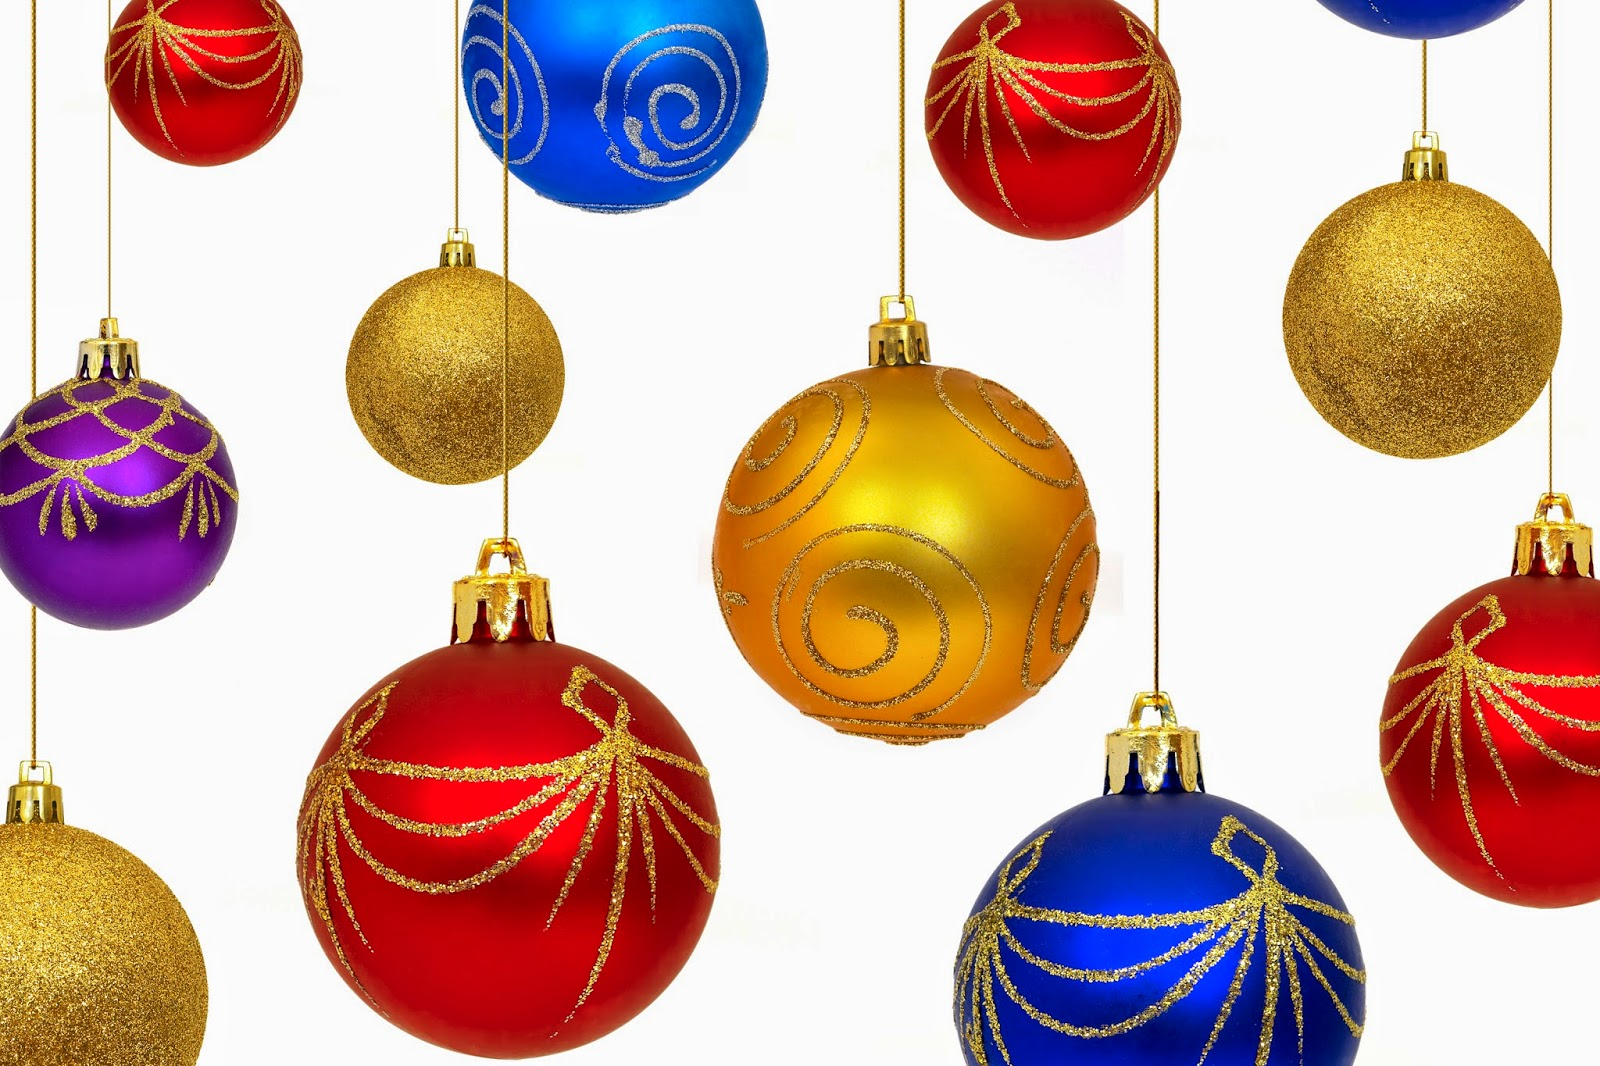 Beautiful Christmas Ornaments Classy With Google Images Christmas Ornaments Photos